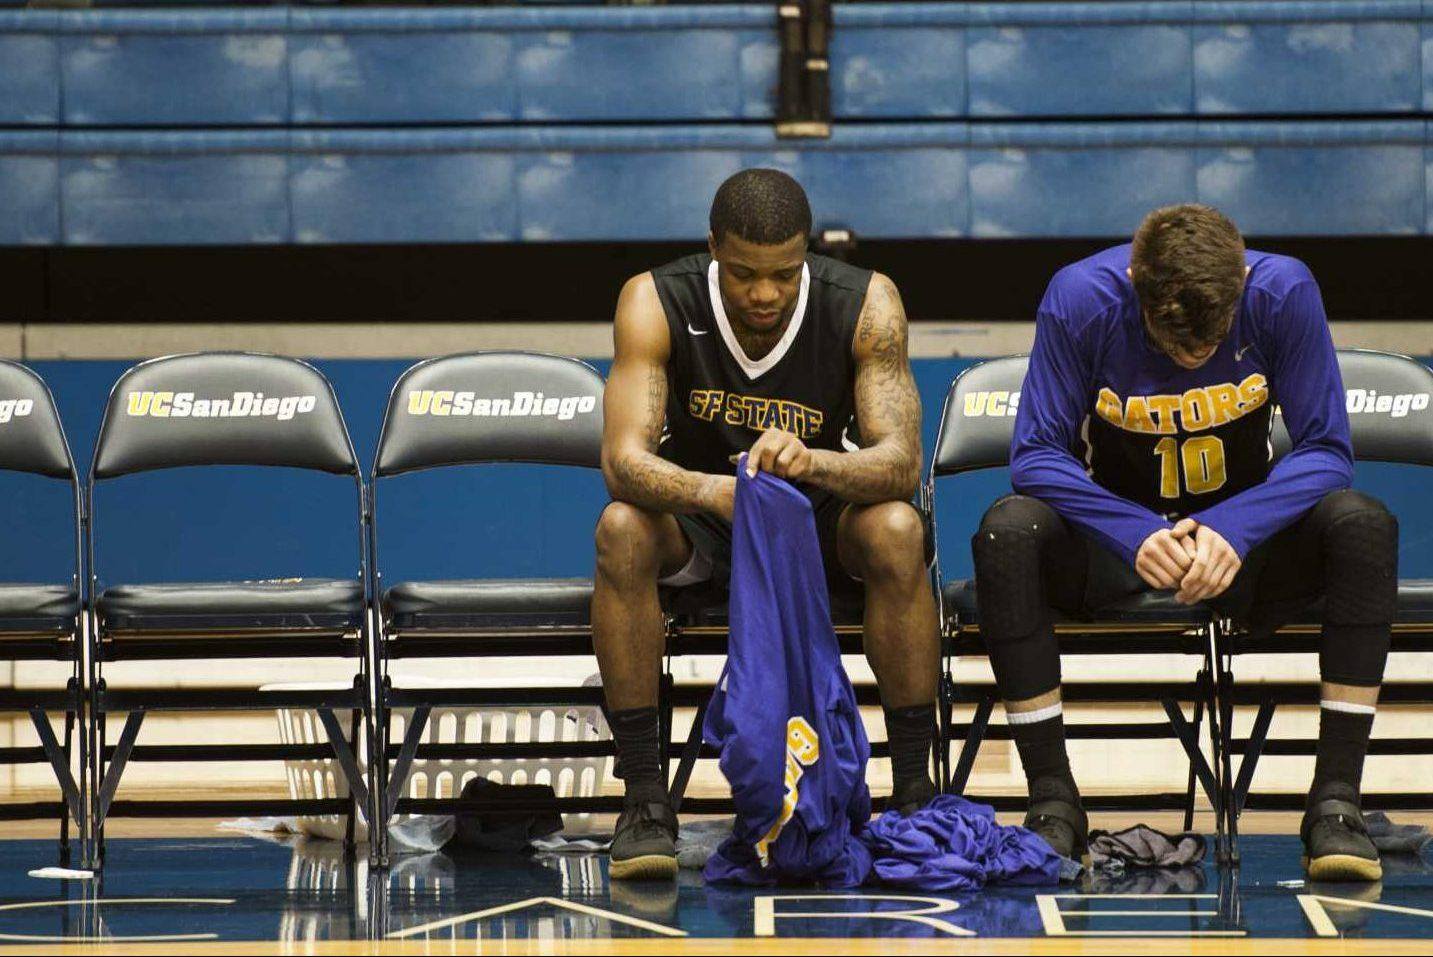 SF State Gators' junior guard Warren Jackson (center) and senior guard Coley Apsay (right) look at the floor during the last minute of a NCAA playoff game against California Baptist University Lancers at RIMAC Arena in La Jolla, Calif. on Friday, March 10, 2017. The Gators' lost to the Lancers with a score of 50-71. (Kin Lee/Xpress)